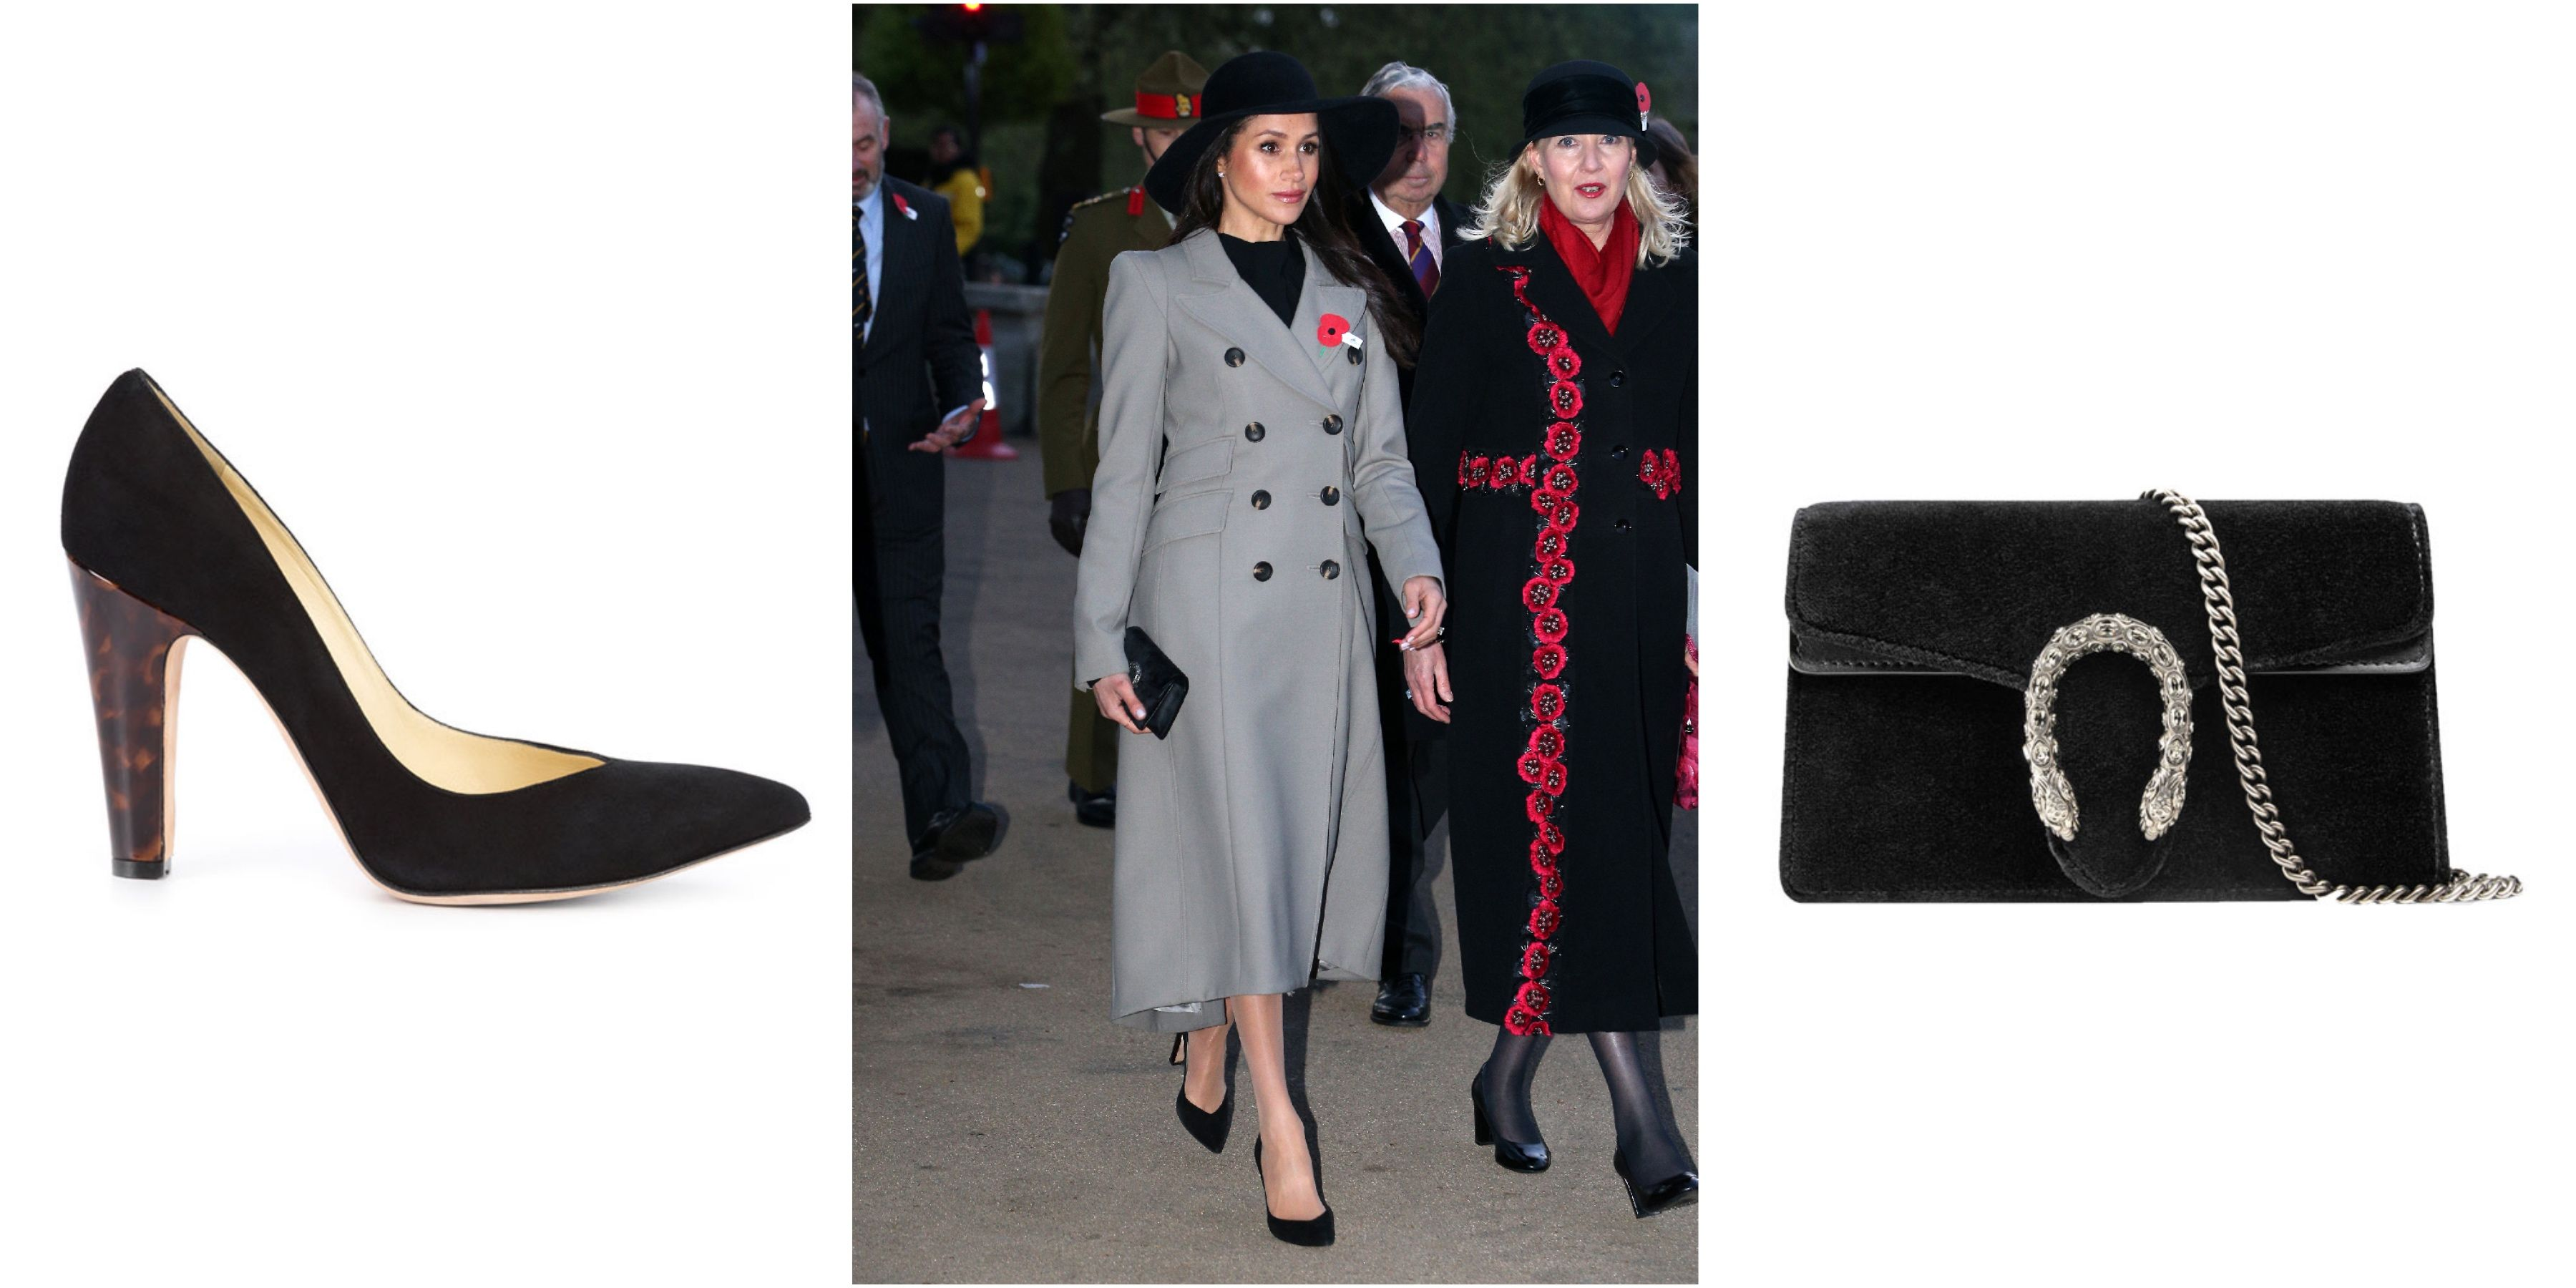 Meghan Markle anzzac day outfit